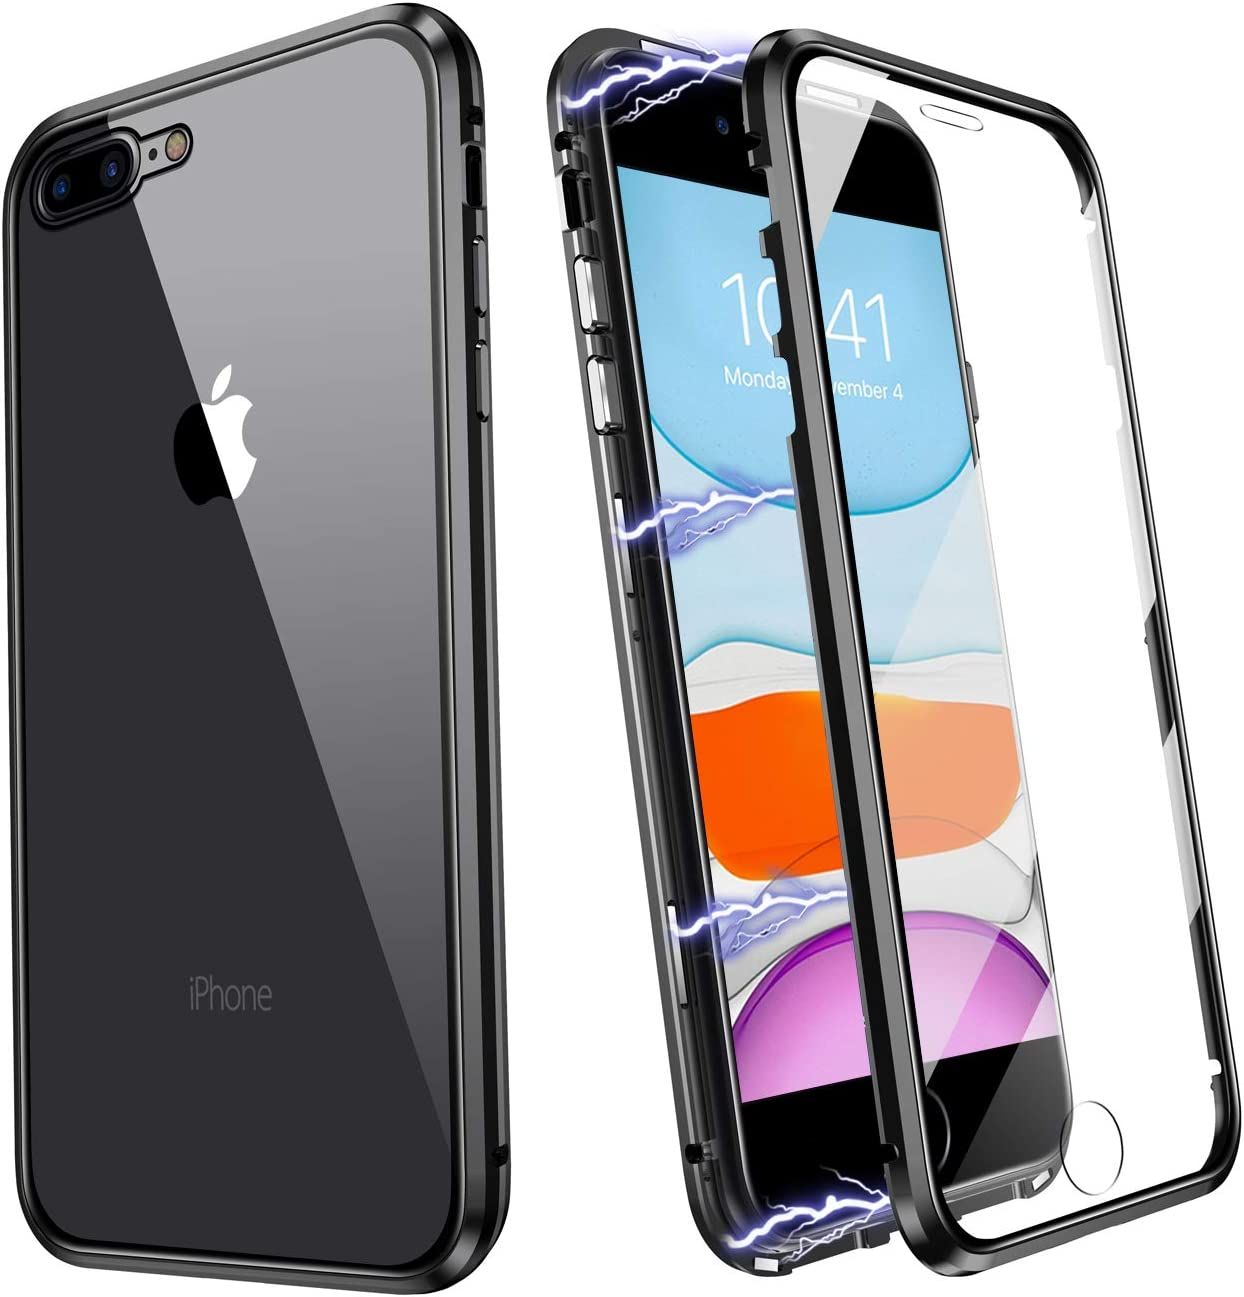 ZHIKE iPhone 7 Plus Case, iPhone 8 Plus Case, Magnetic Metal Frame Front and Back Tempered Glass Full Screen Coverage One-Piece Flip Cover Anti-Slip Design [Support Wireless Charging] [Black]